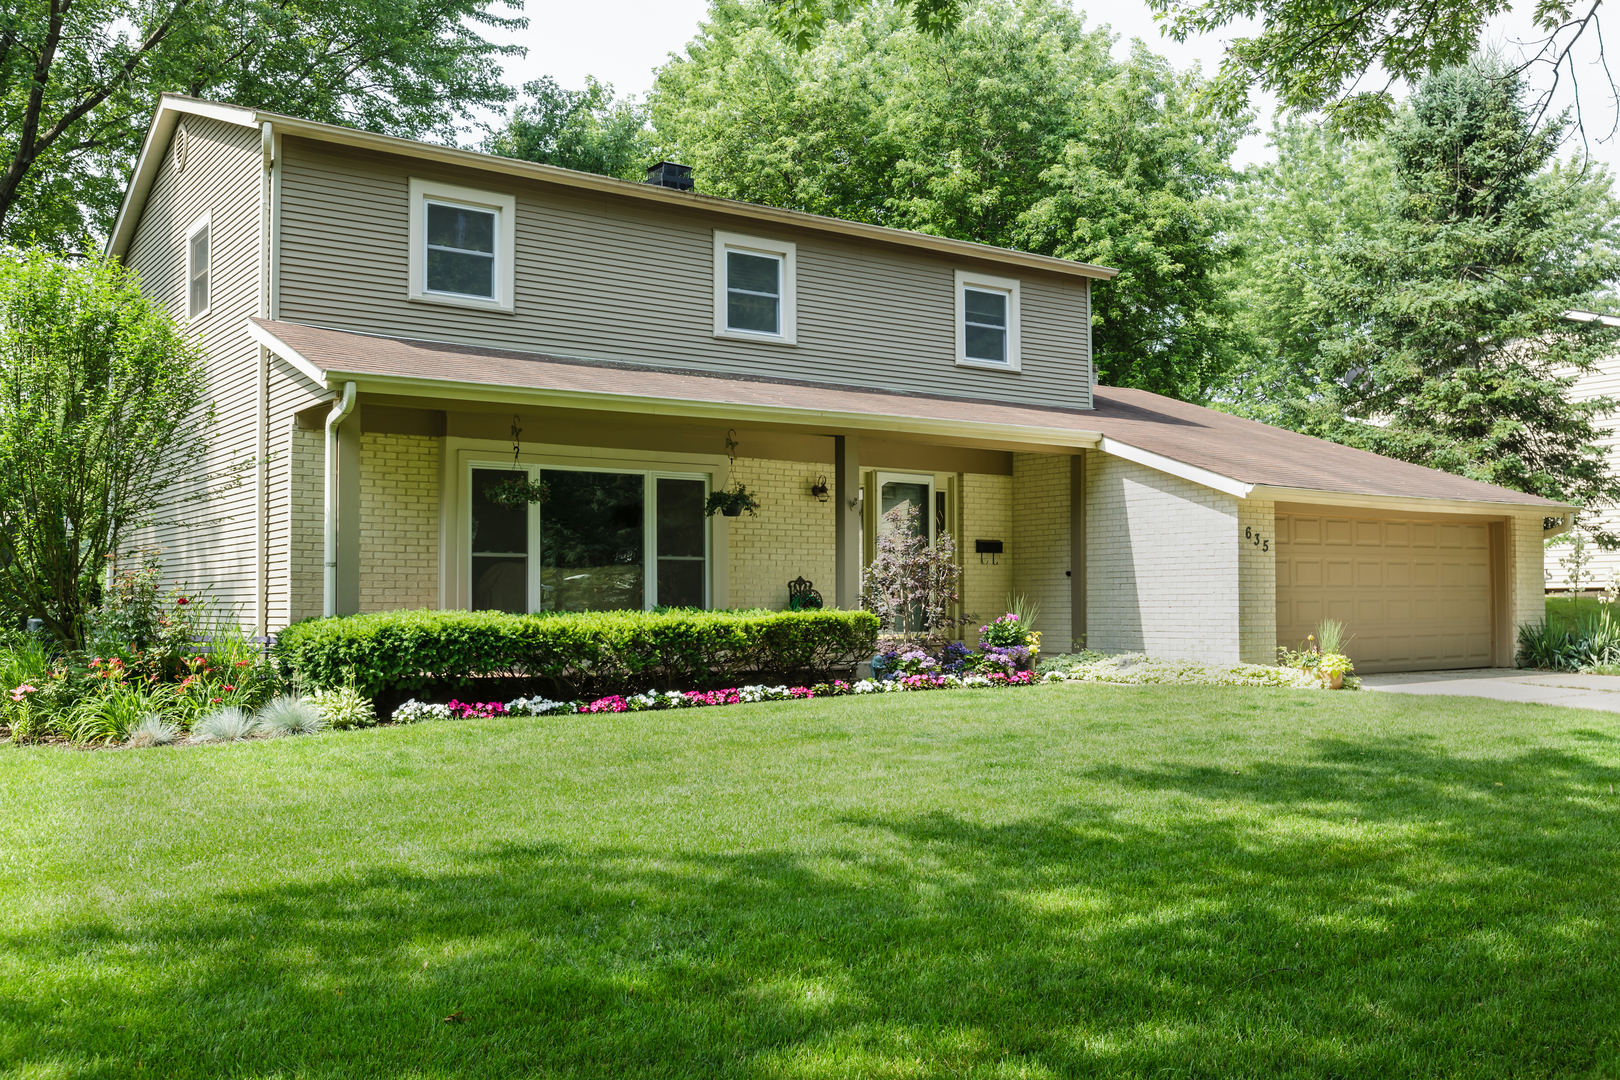 635 East Golf Road, Libertyville IL 60048